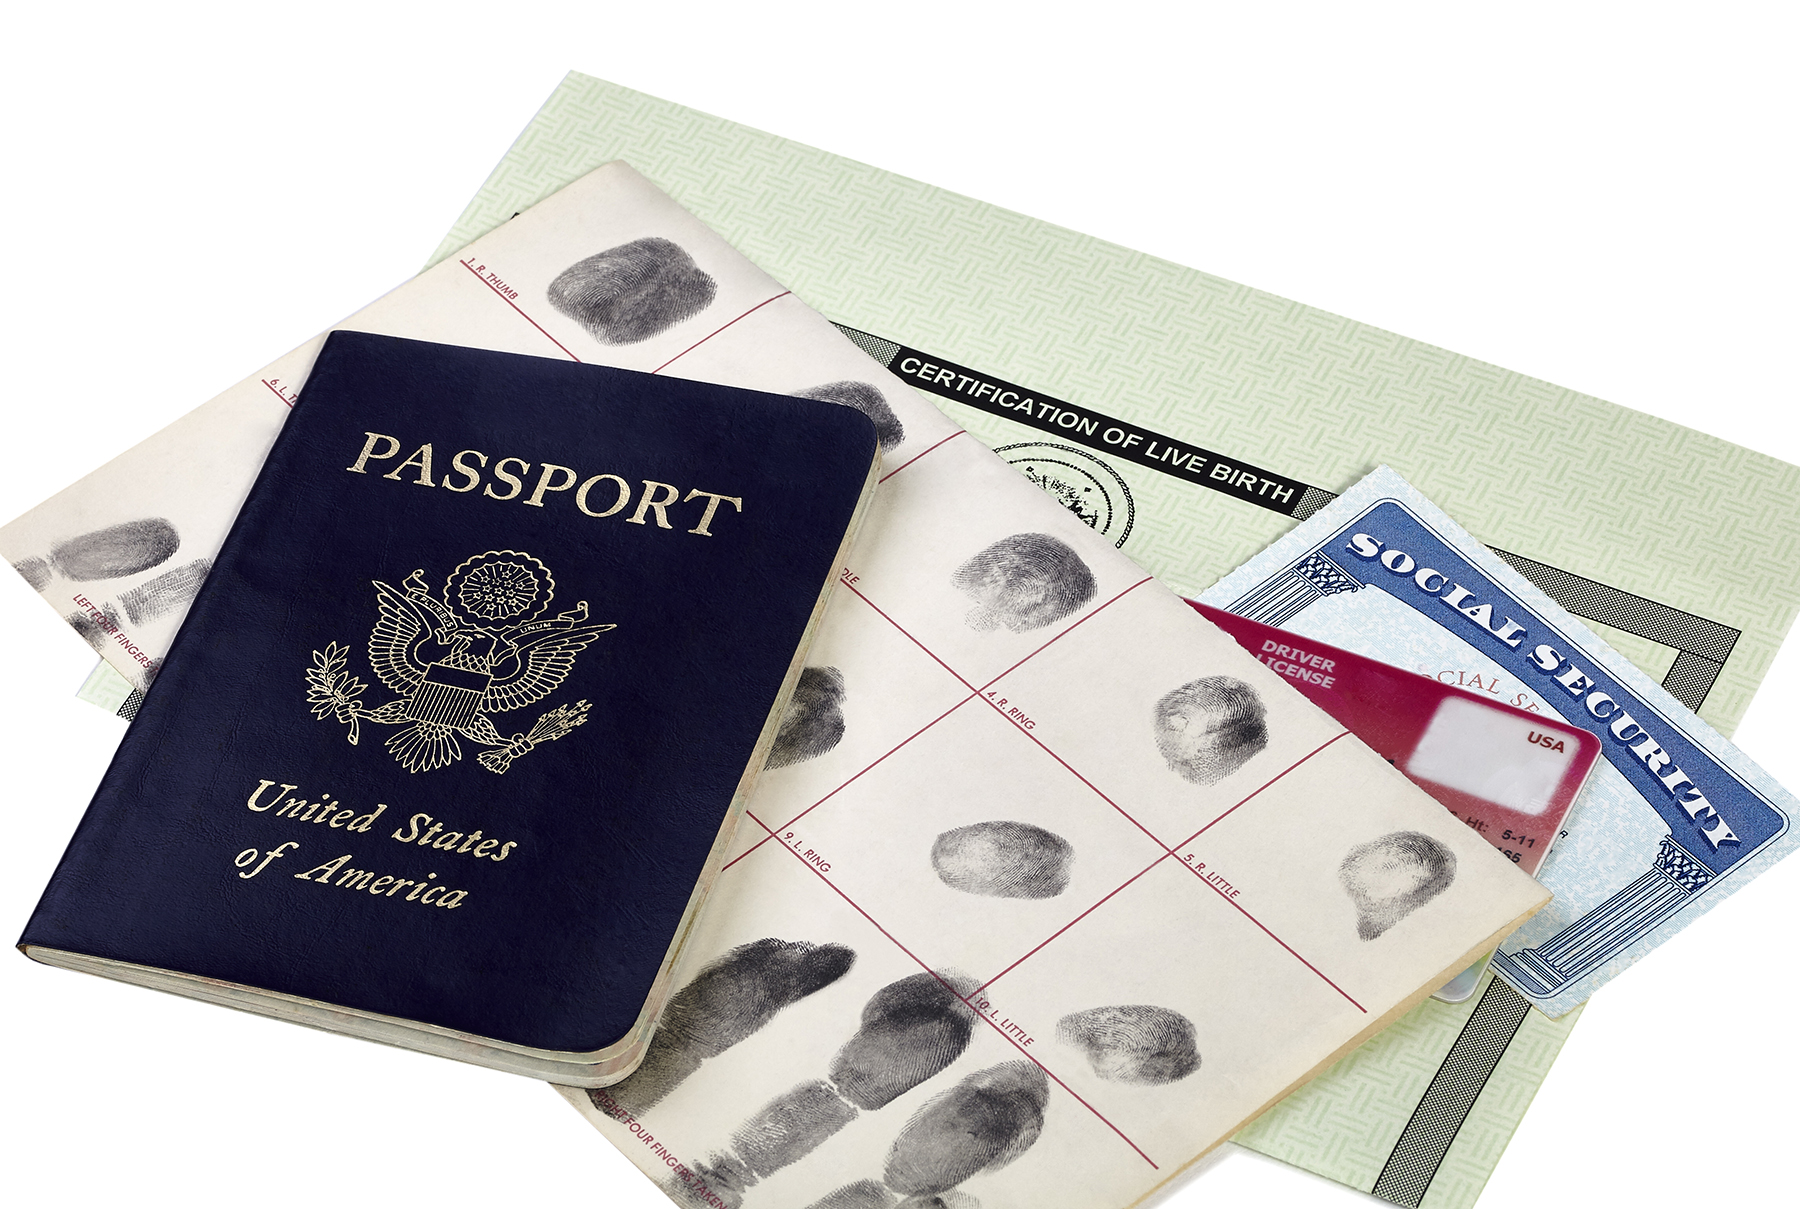 Passport, birth certificate